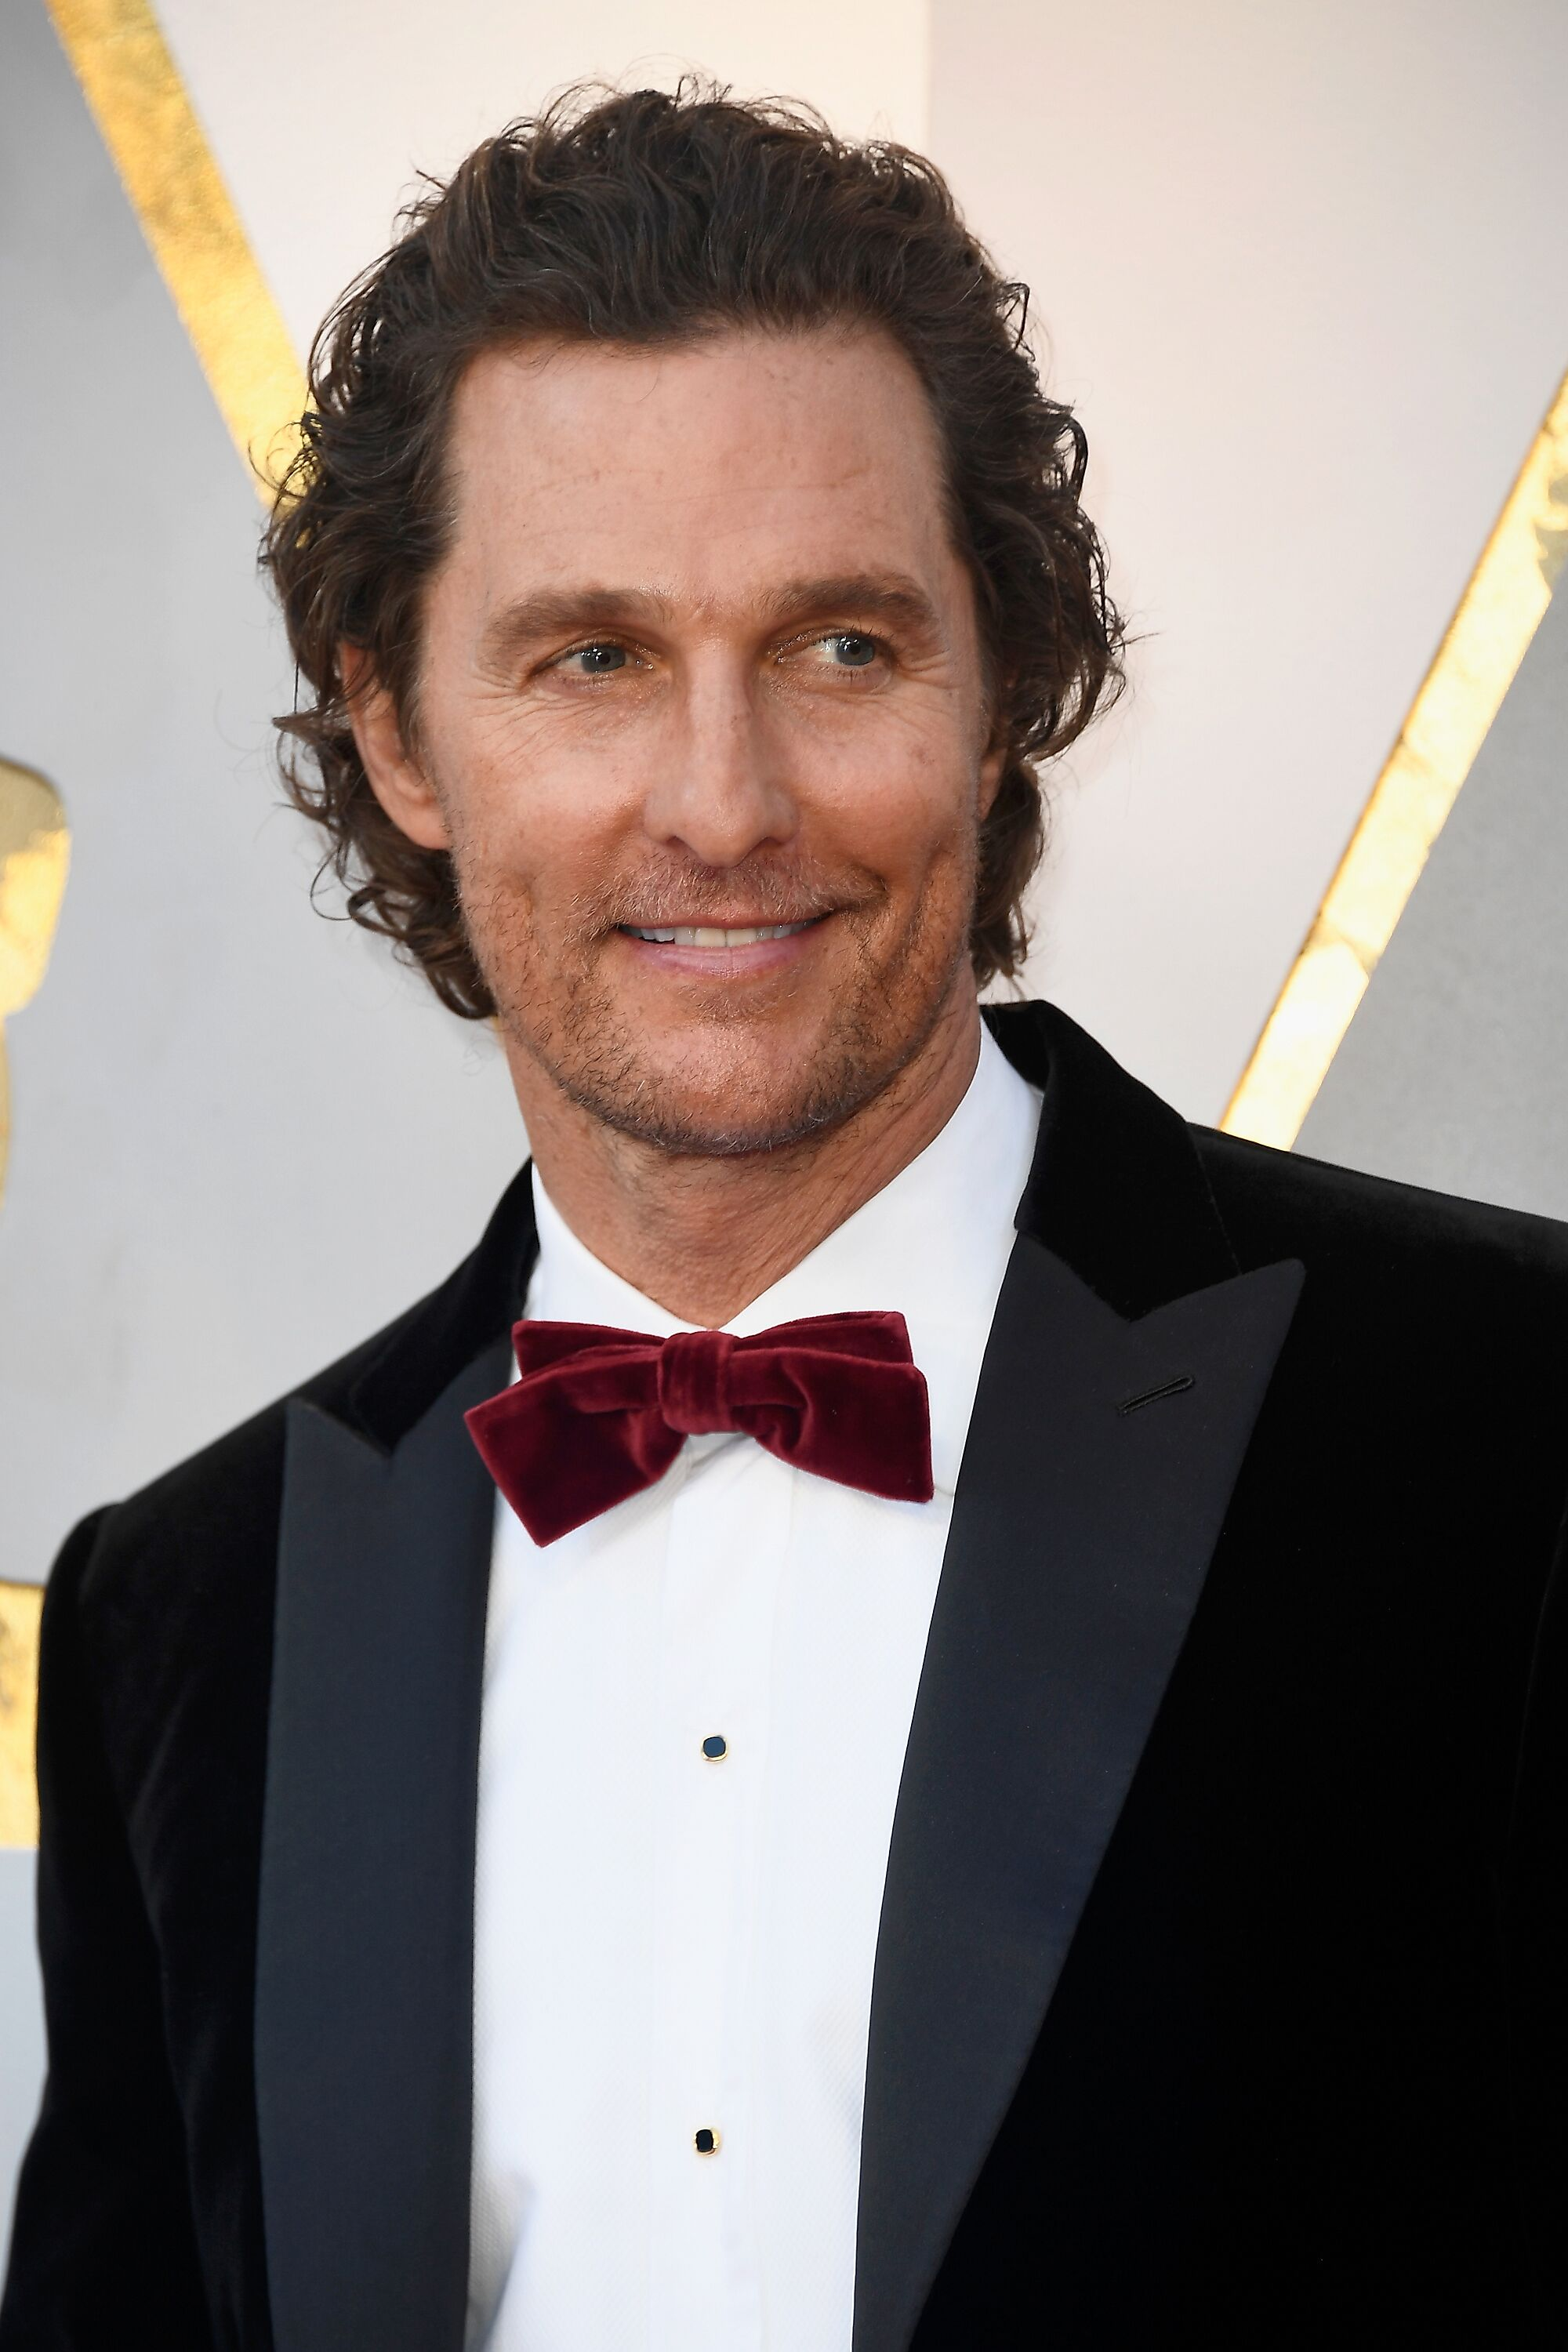 Matthew McConaughey attends the 90th Annual Academy Awards at Hollywood & Highland Center on March 4, 2018 in Hollywood, California. | Source: Getty Images